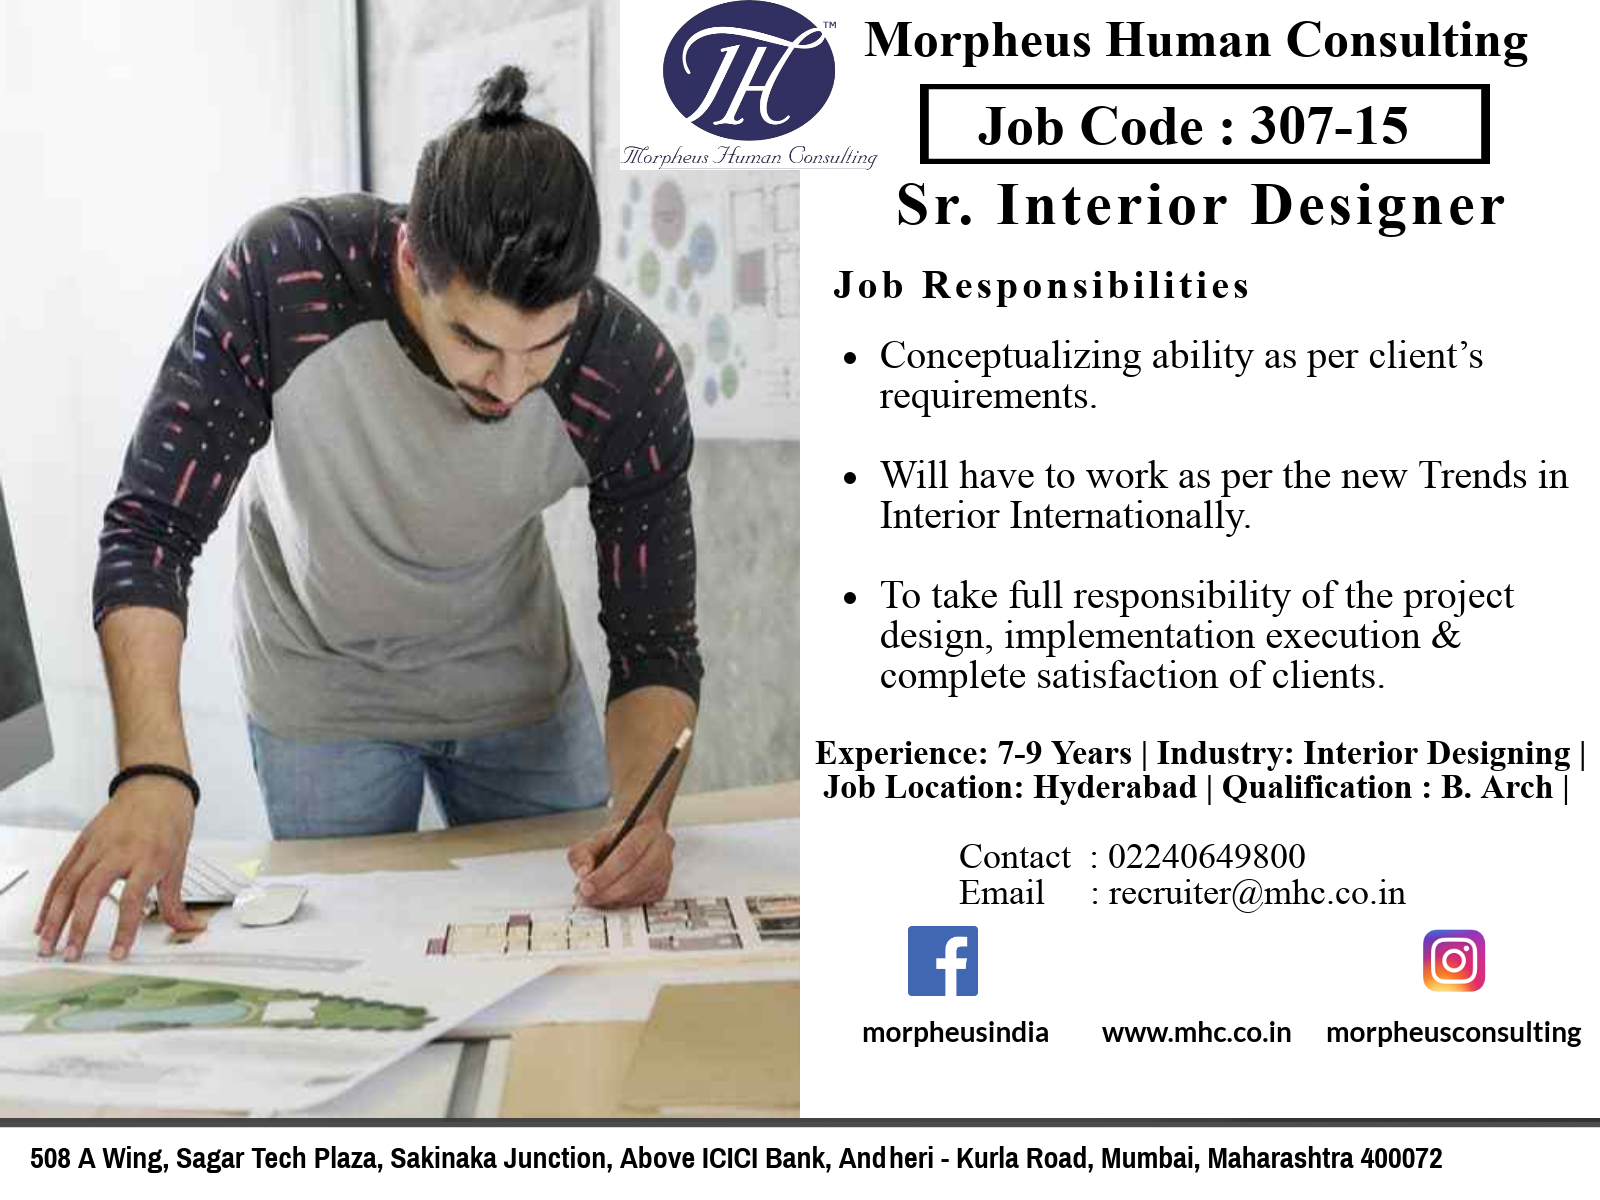 We Are Looking For A Sr Interior Designer In Hyderabad For A